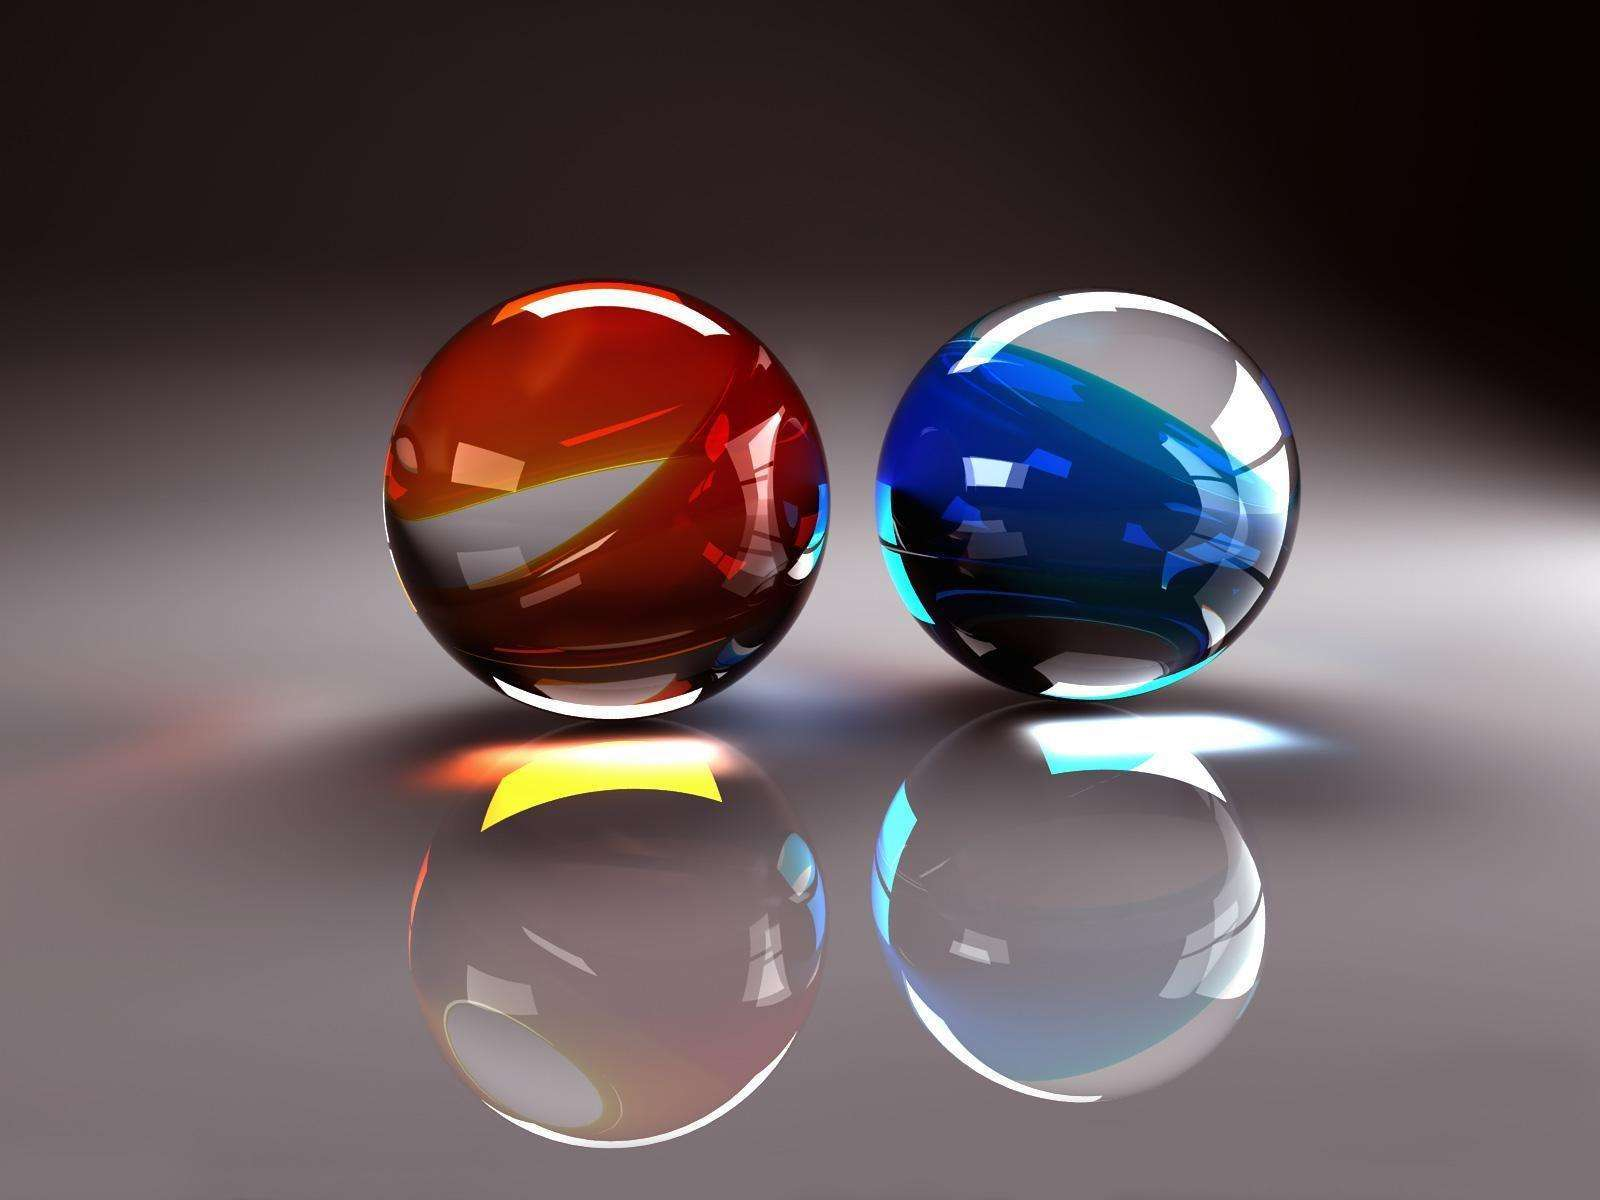 3d Fruit Glass Hd Wallpaper 1080p HDWallWidecom 1600x1200